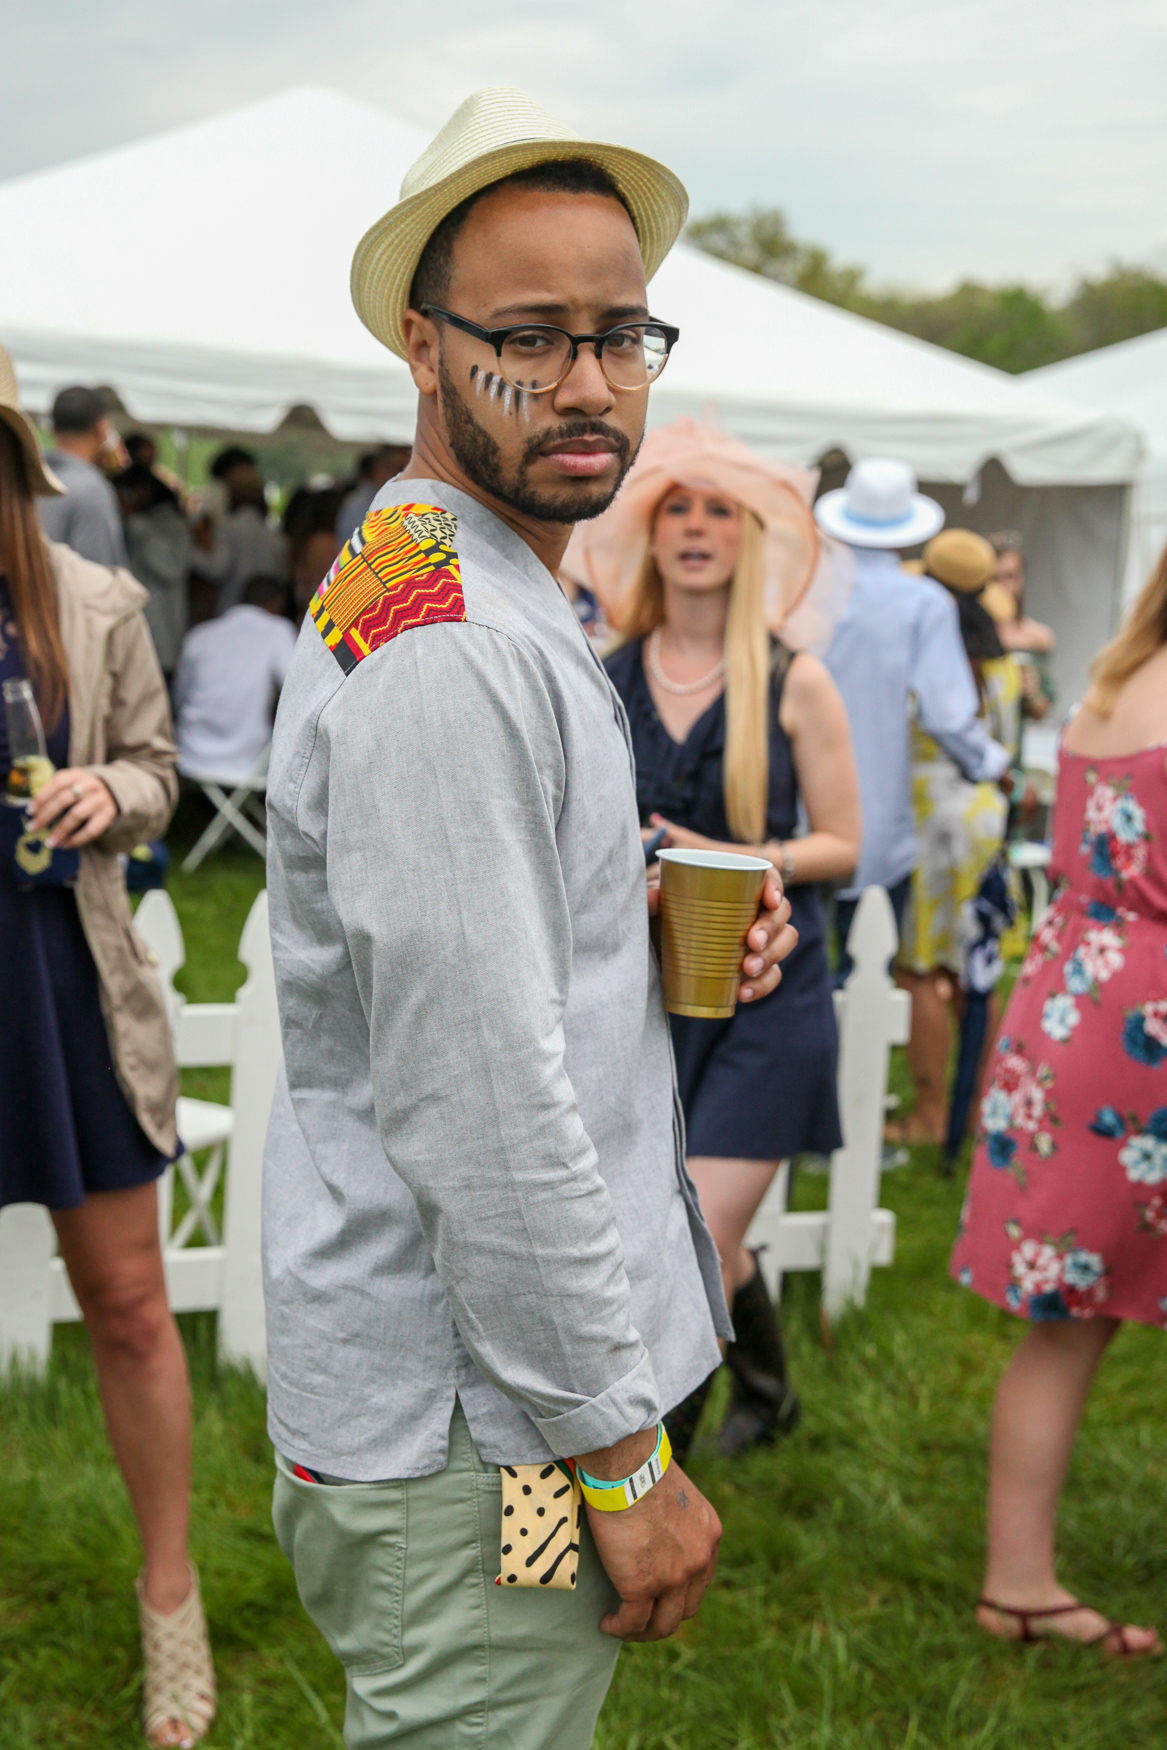 We're totally here for this unconventional men's look! (Image: Amanda Andrade-Rhoades/DC Refined)